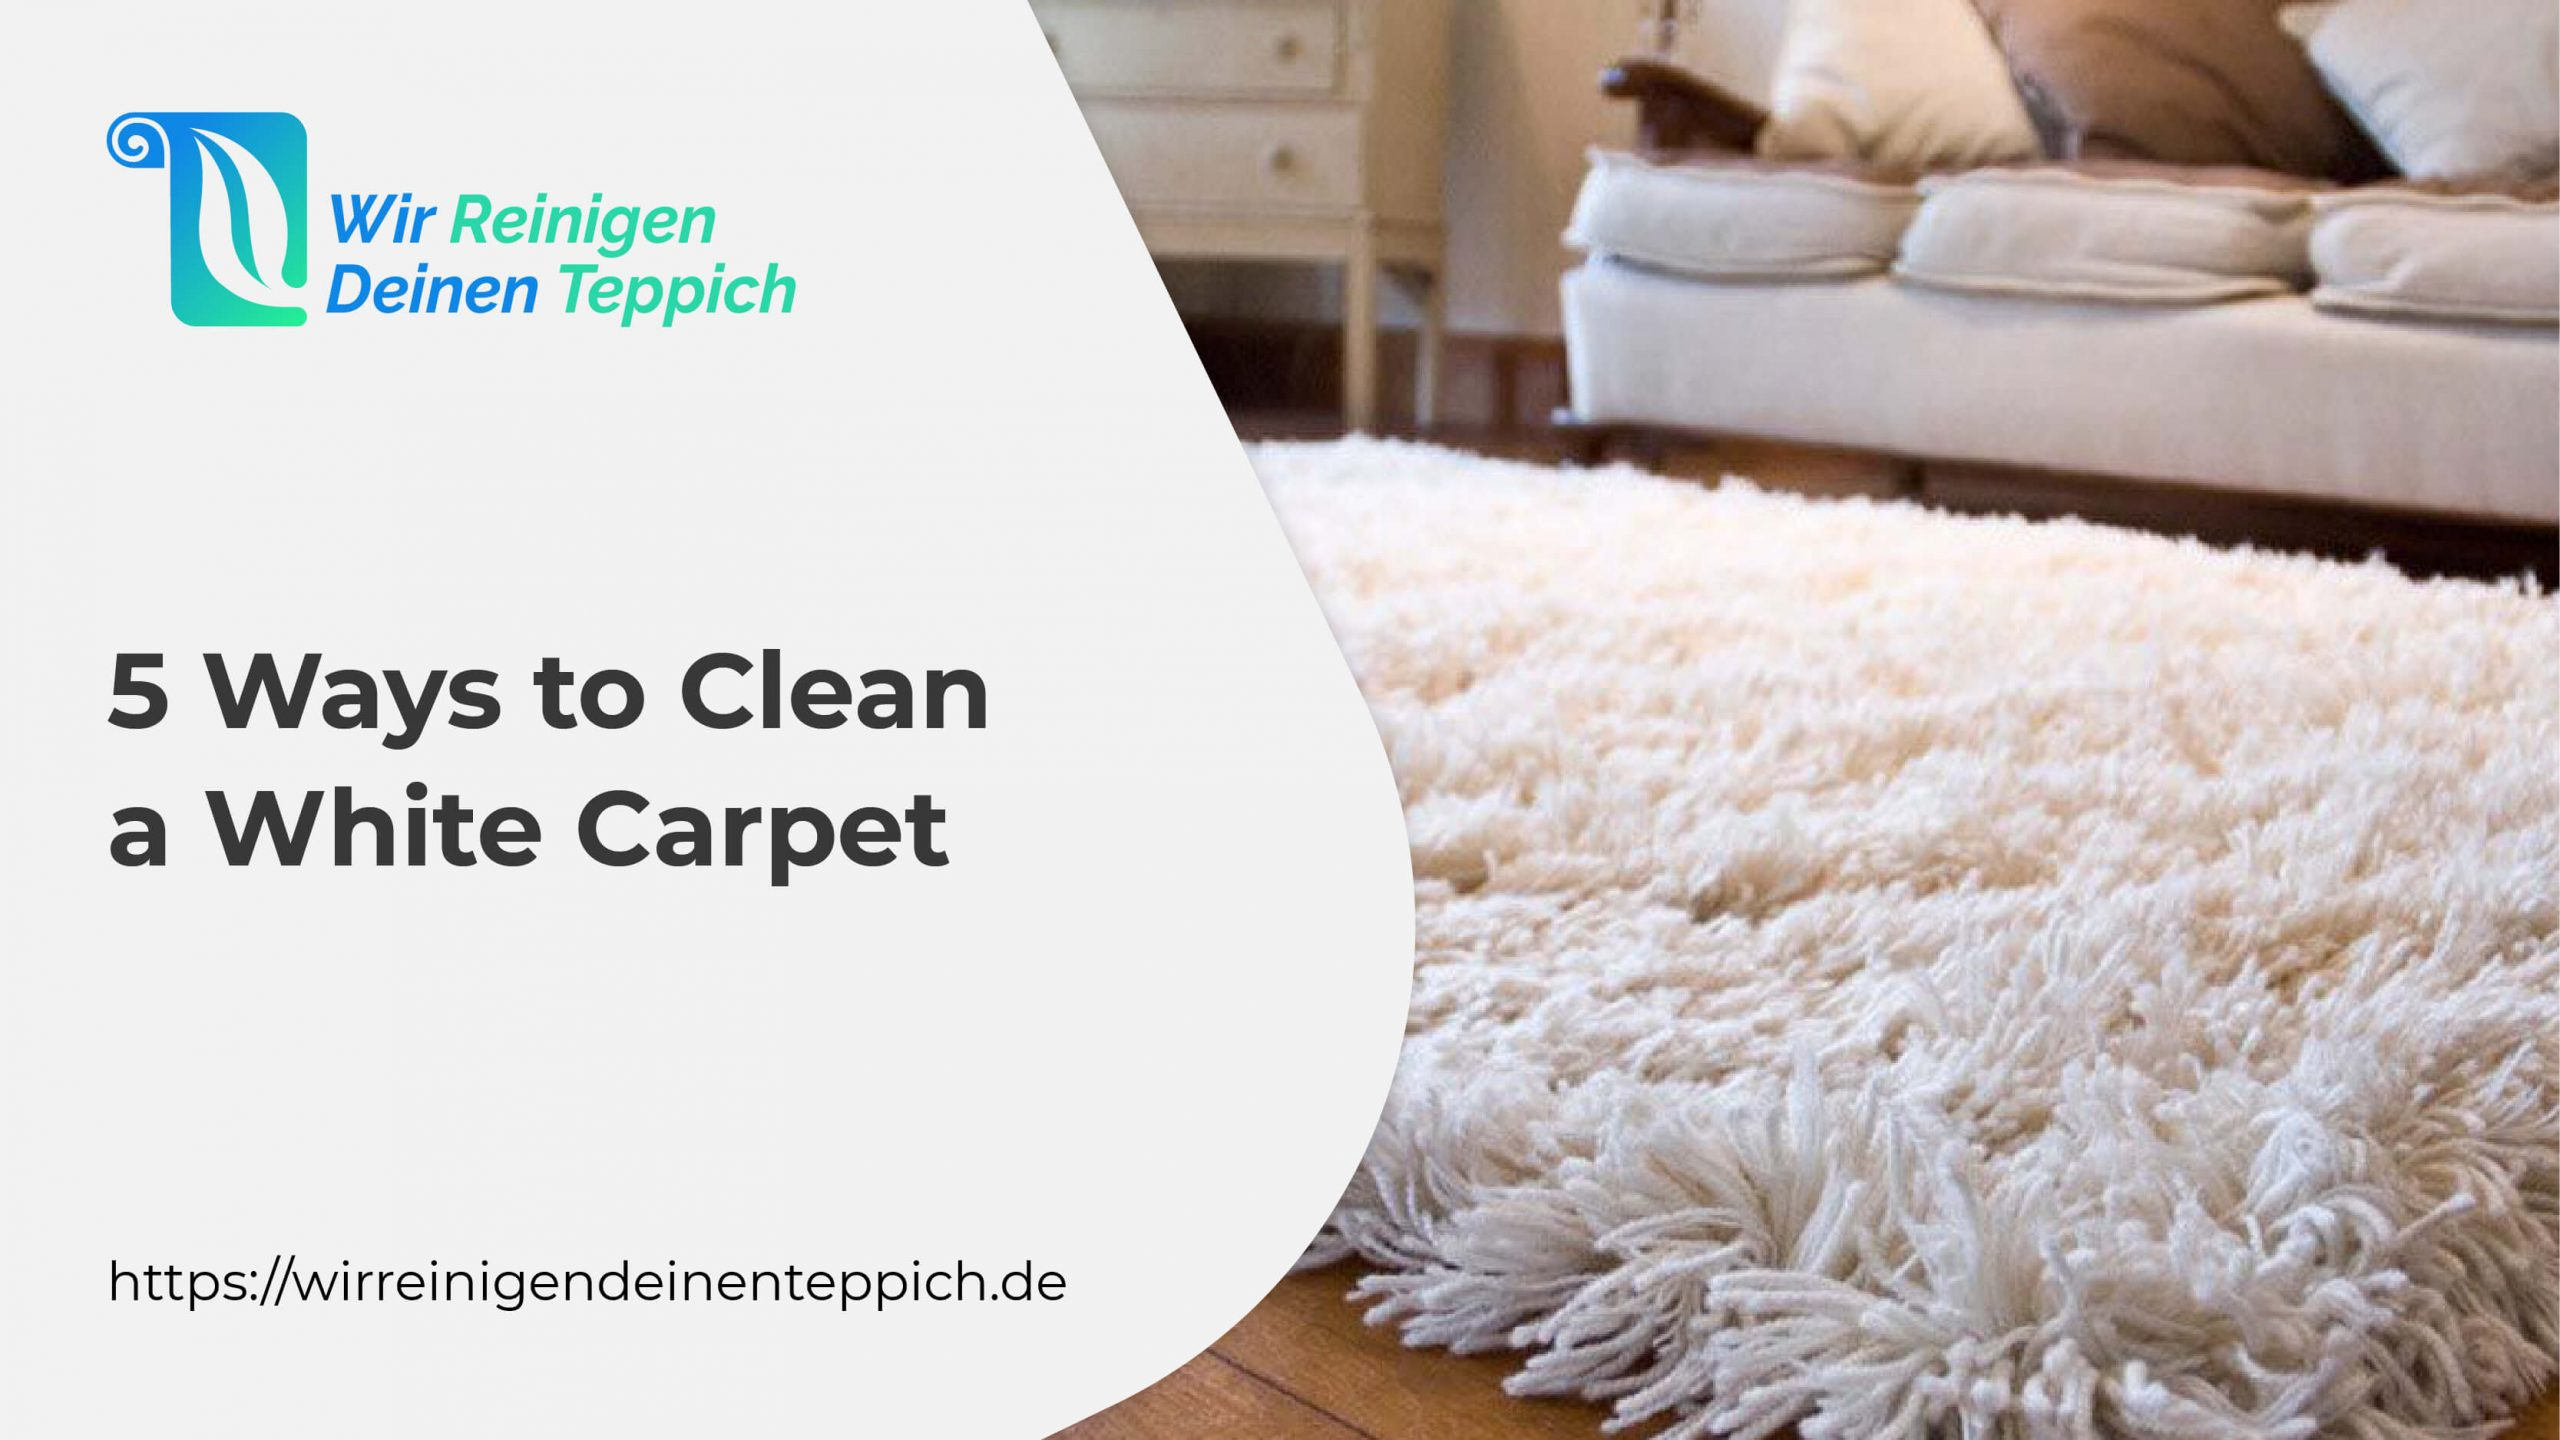 5 Ways to Clean a White Carpet